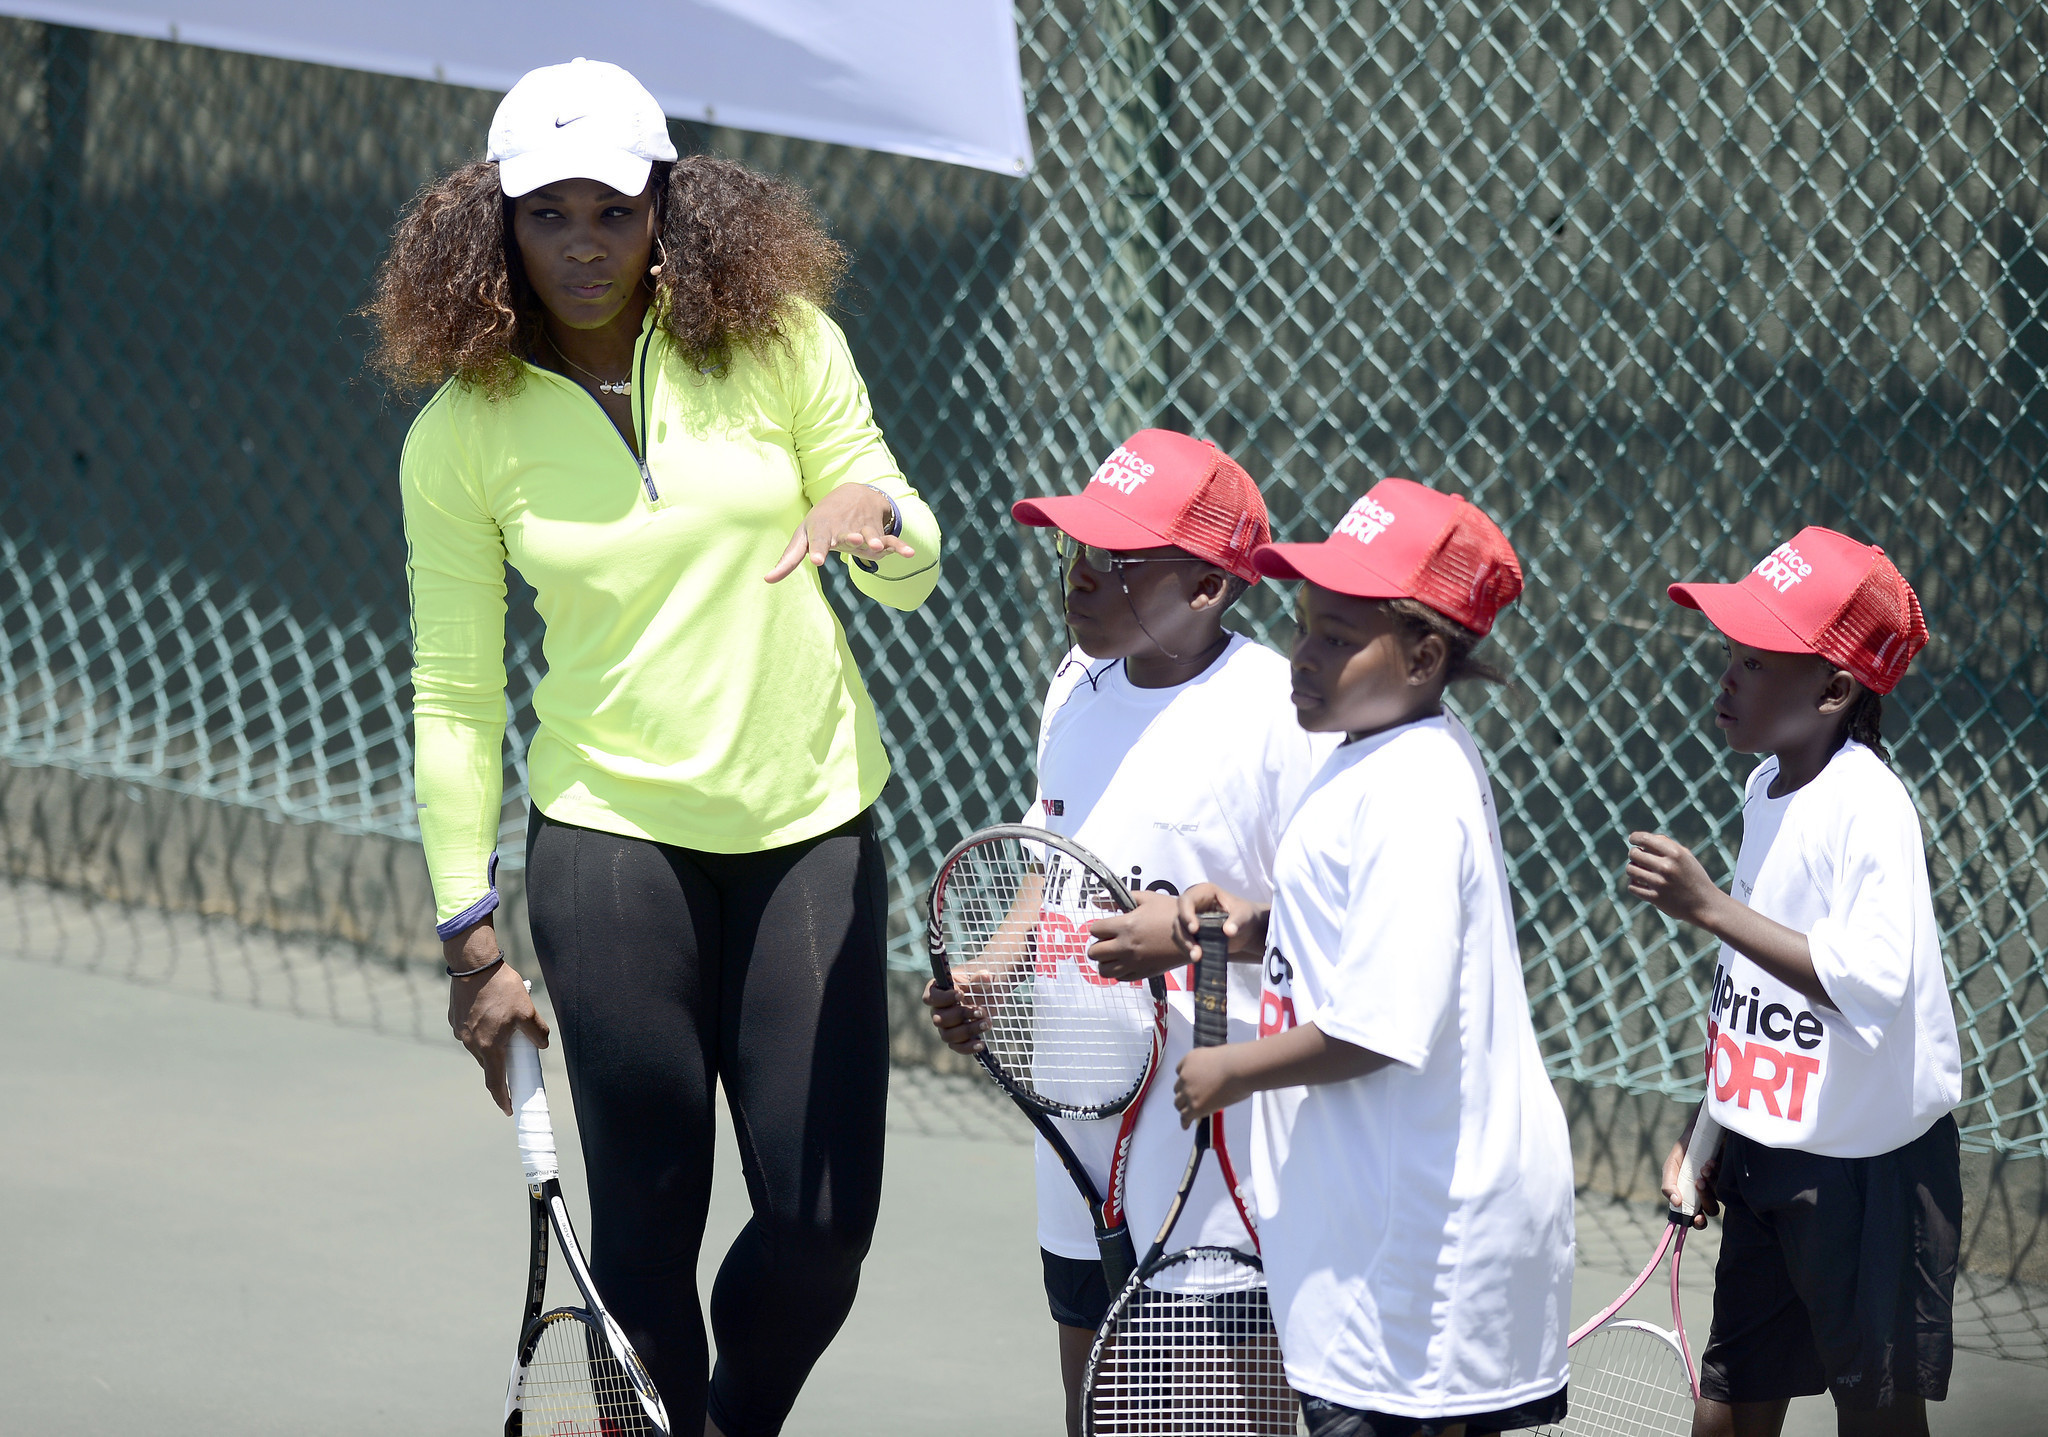 2d0ca01967d Venus and Serena Williams ready for tennis after Africa tour - LA Times